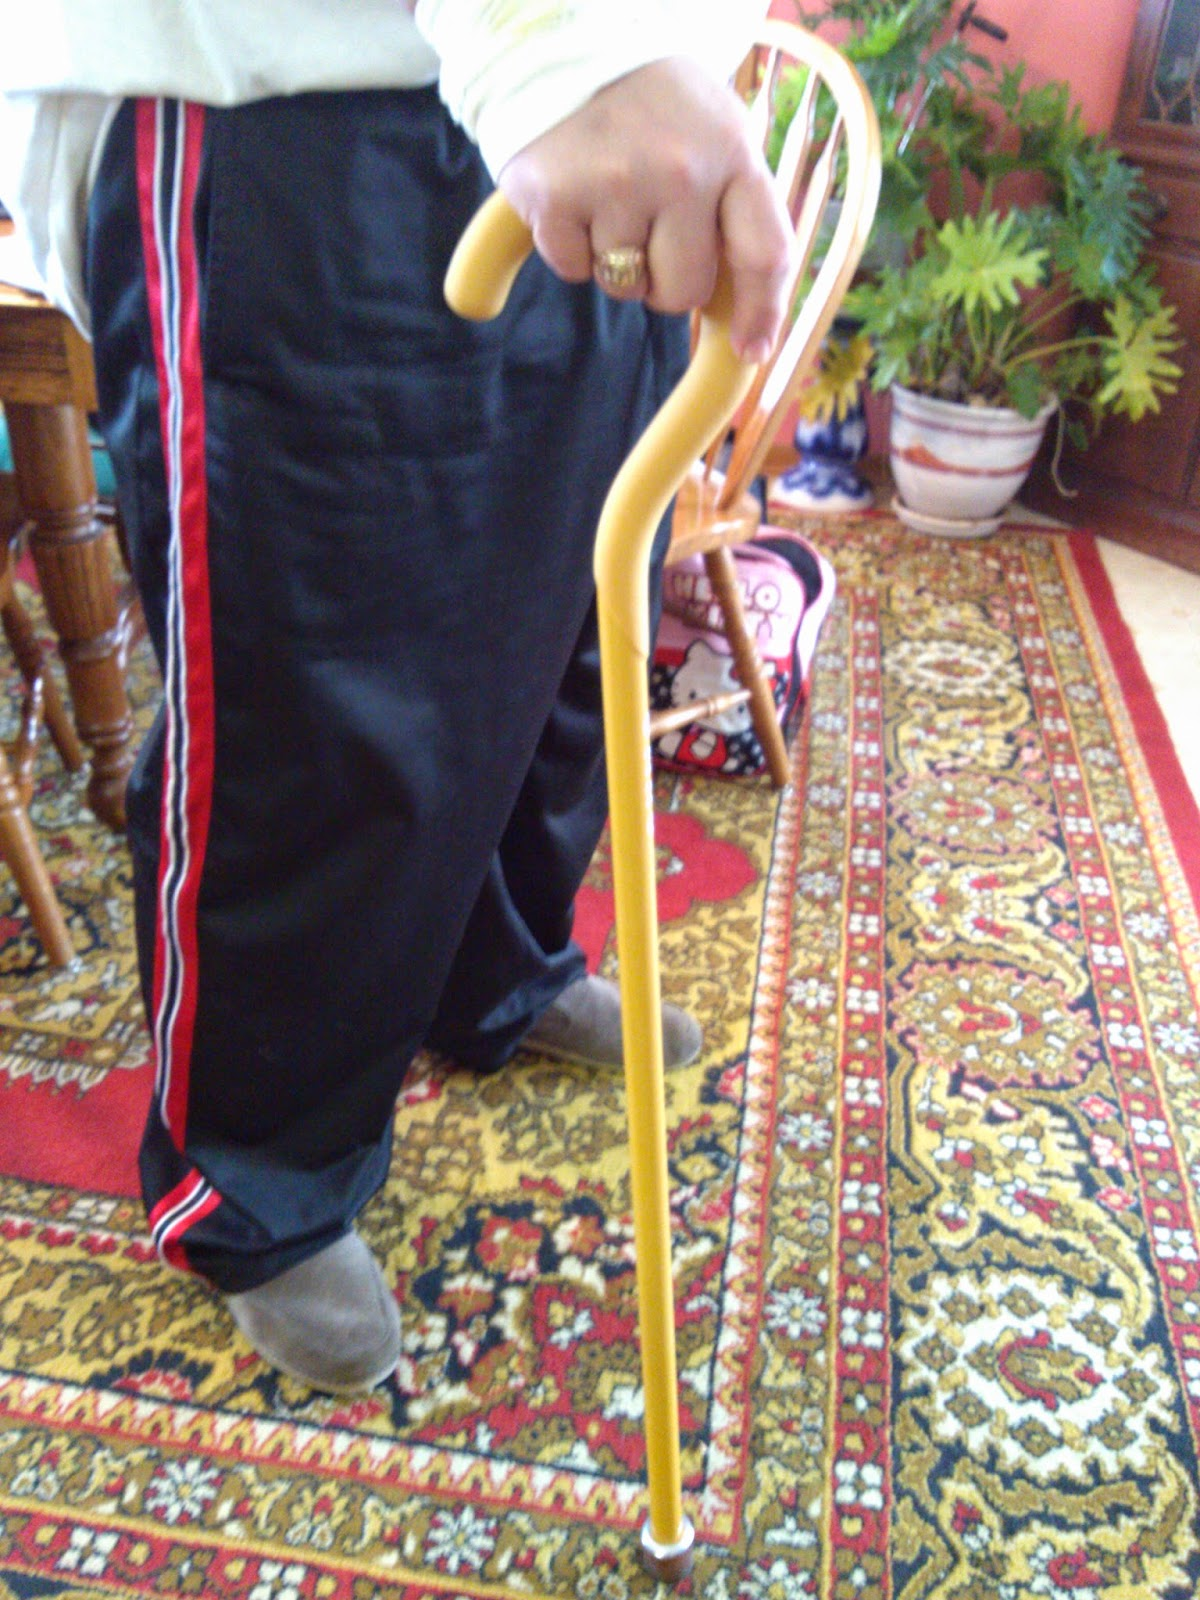 Sabi Sport Lightweight Cane Review